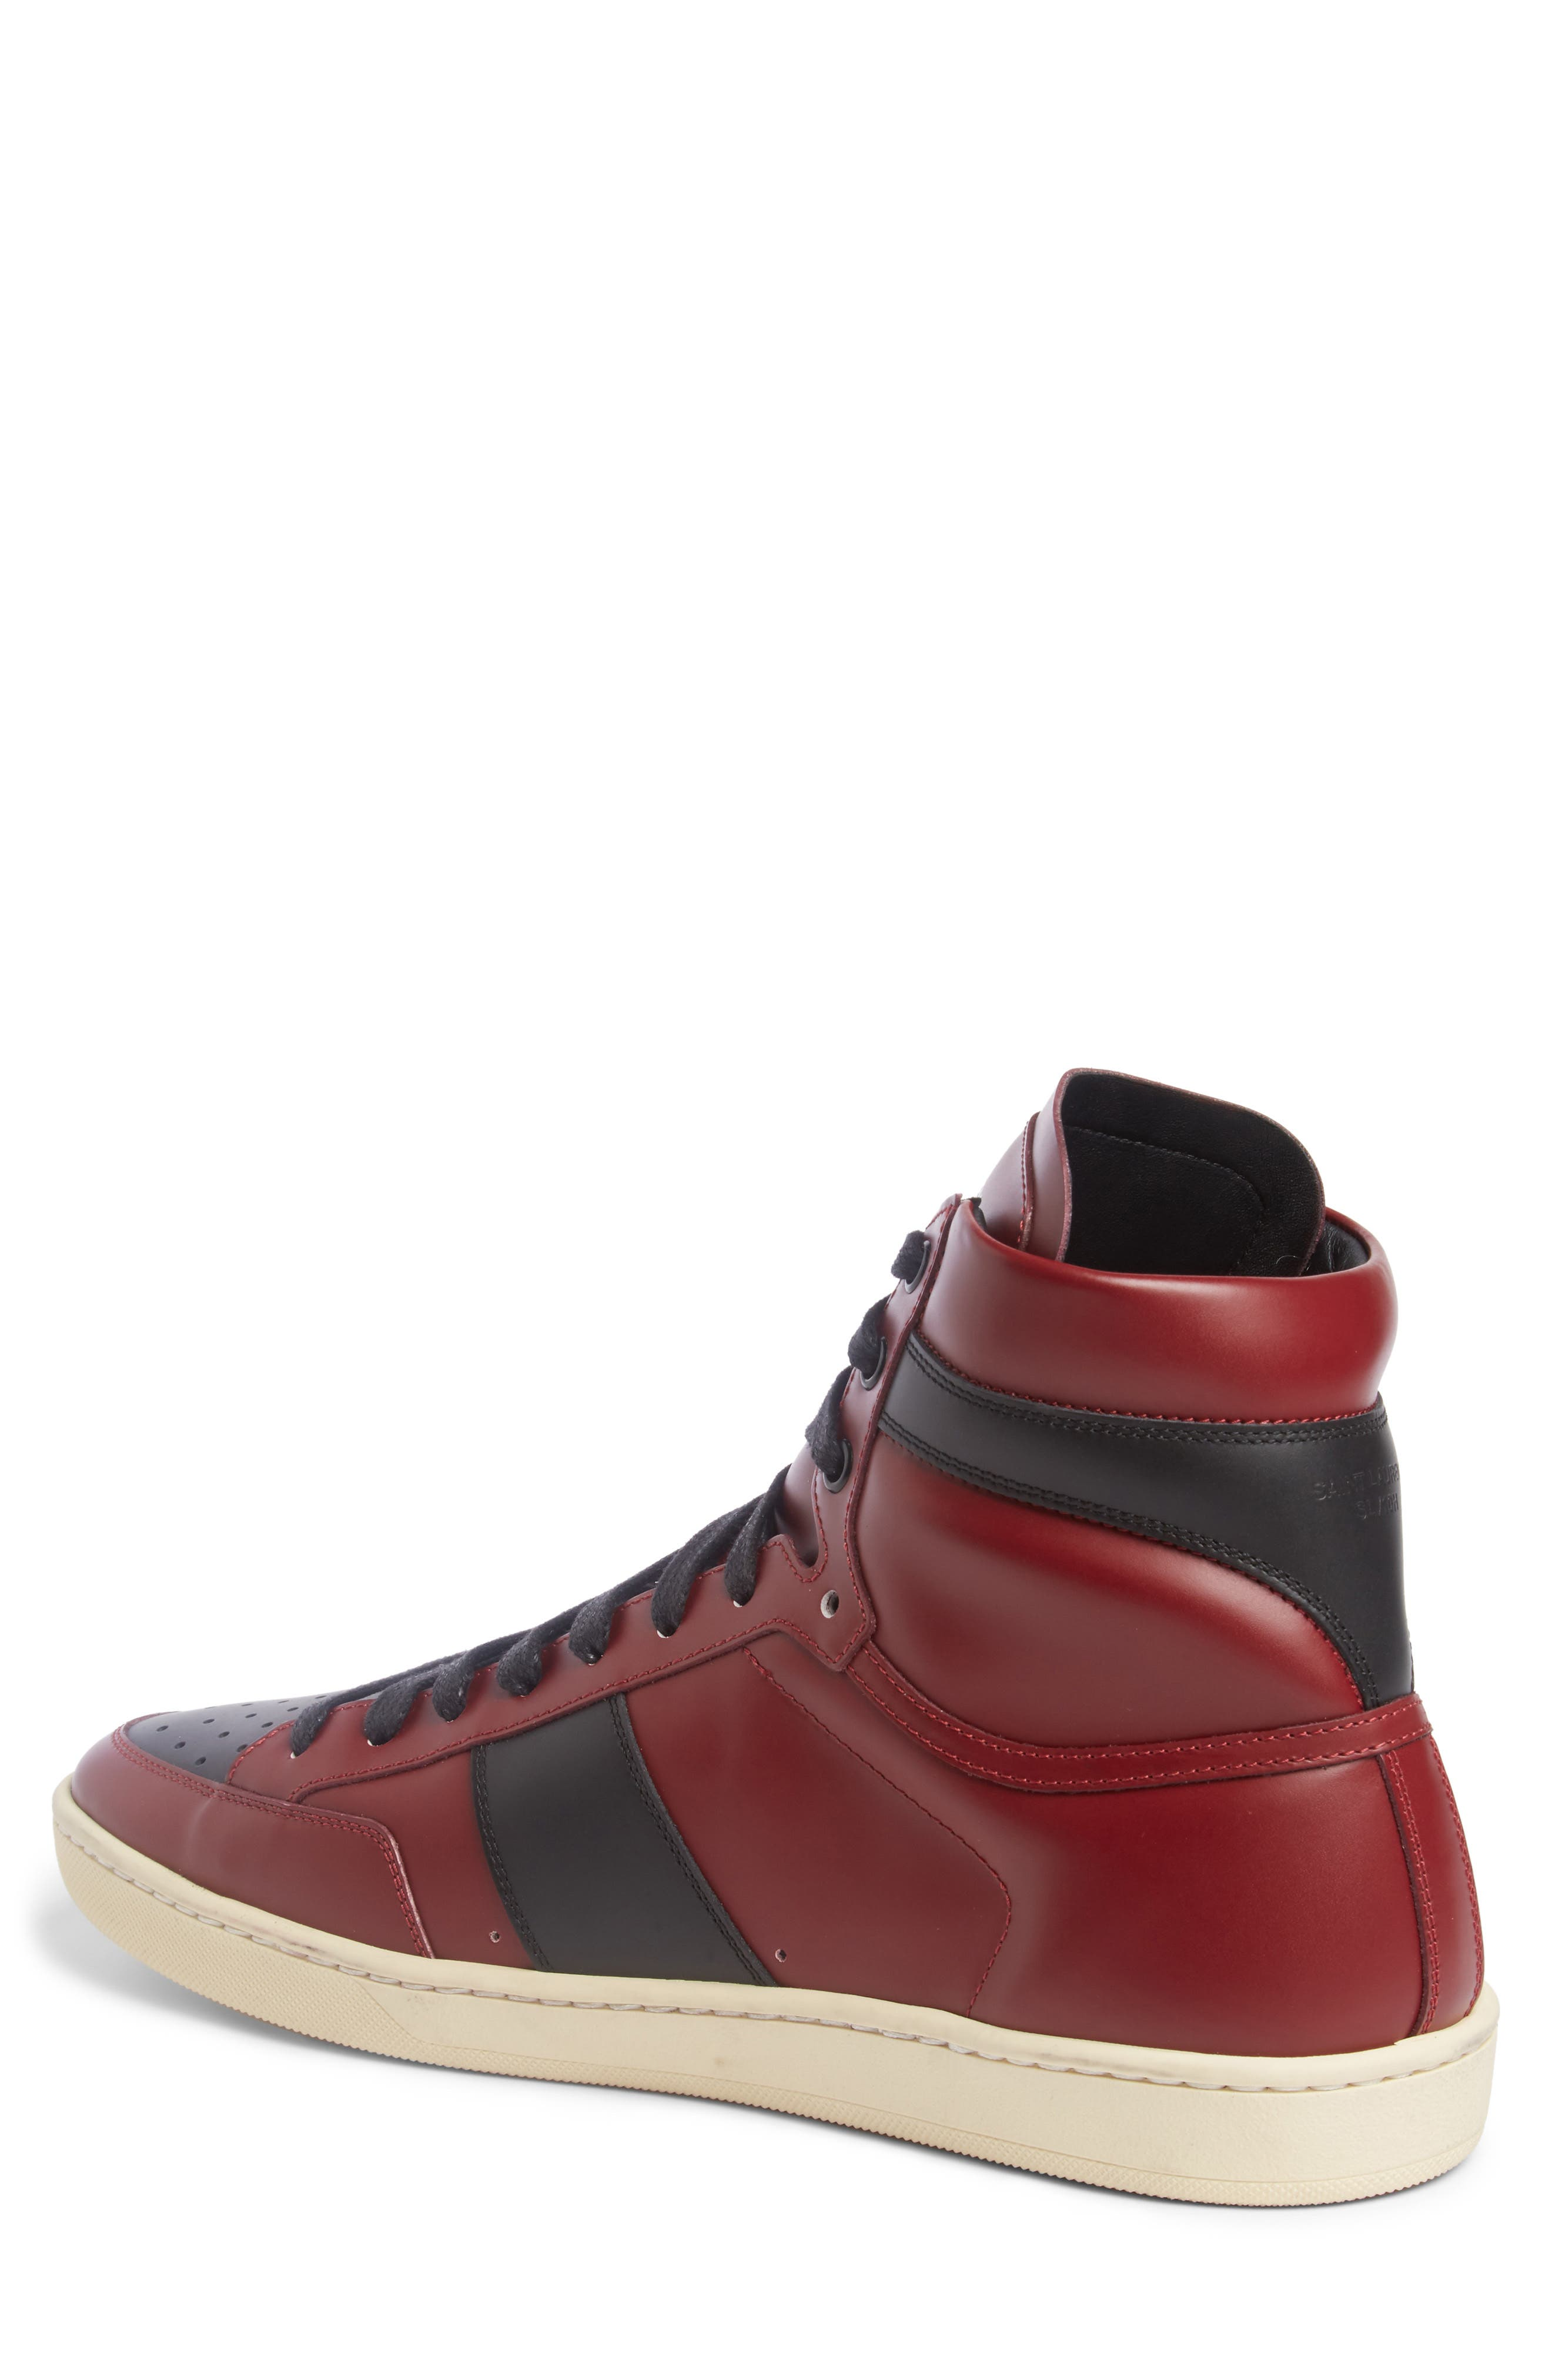 SL/10H Signature Court Classic High-Top Sneaker,                             Alternate thumbnail 2, color,                             Dp Red/ Blk Leather